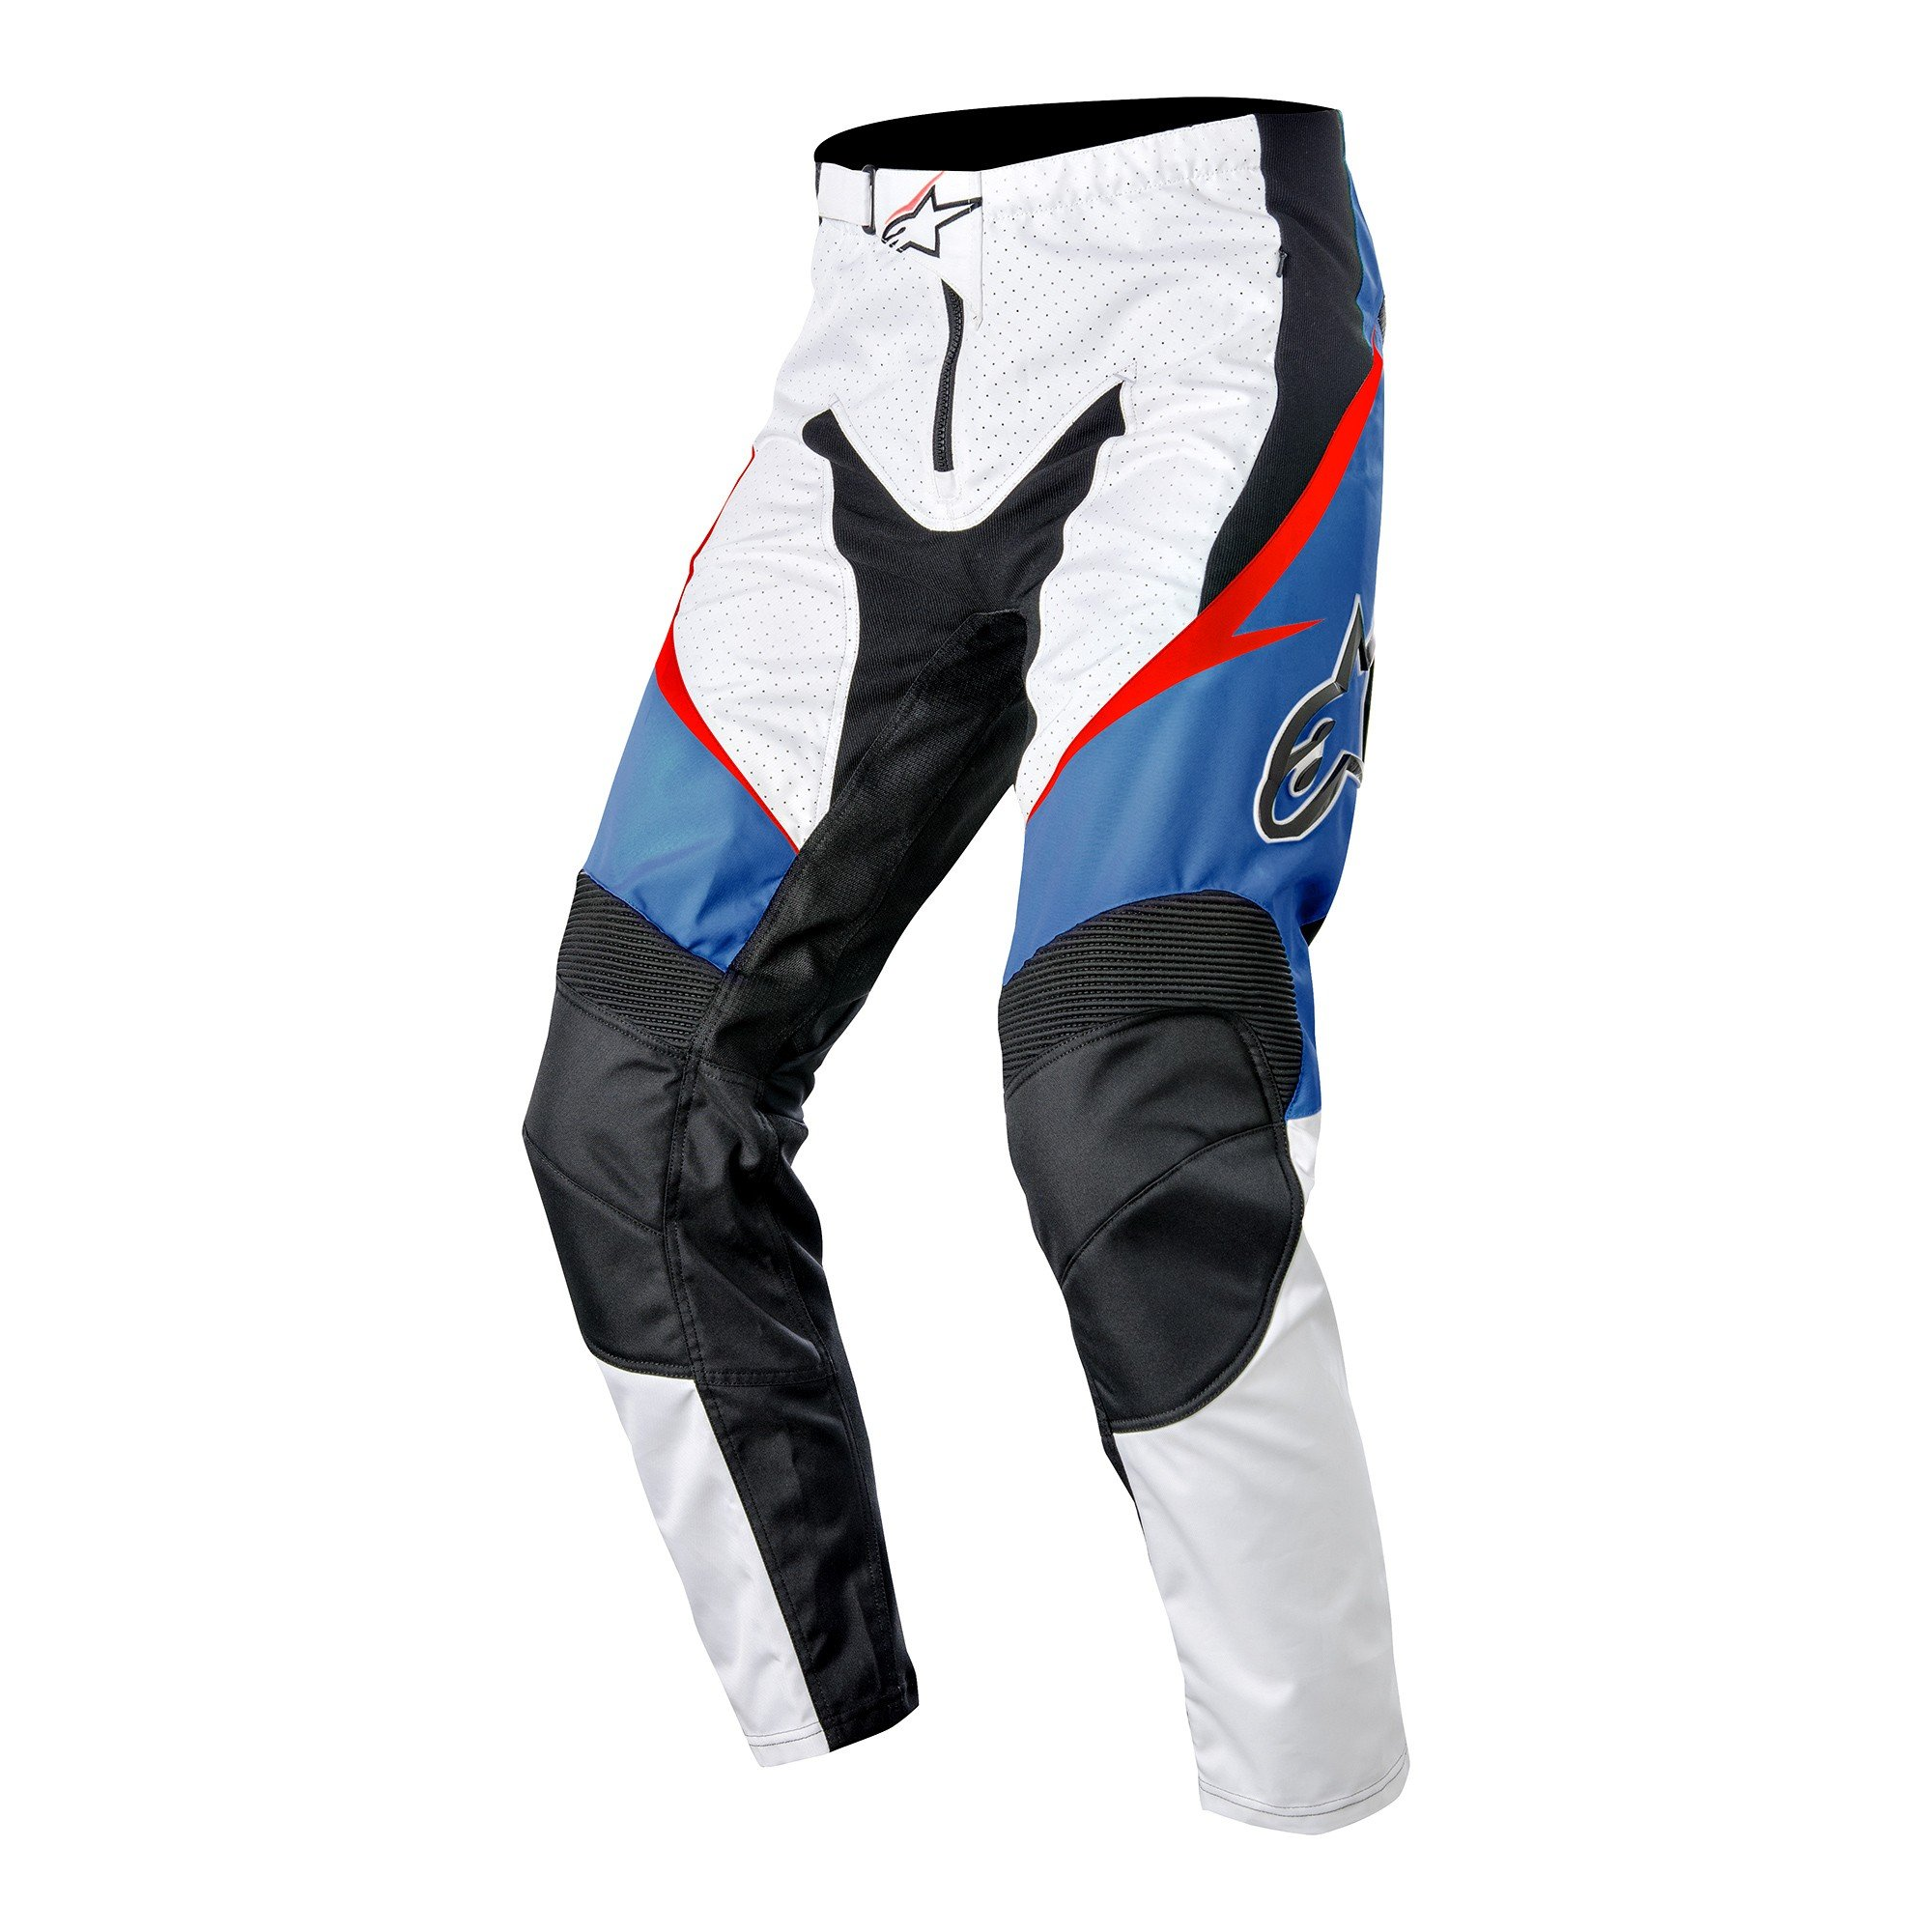 Alpinestars Men's Sight Pant, 32, White/Red/Electric Blue